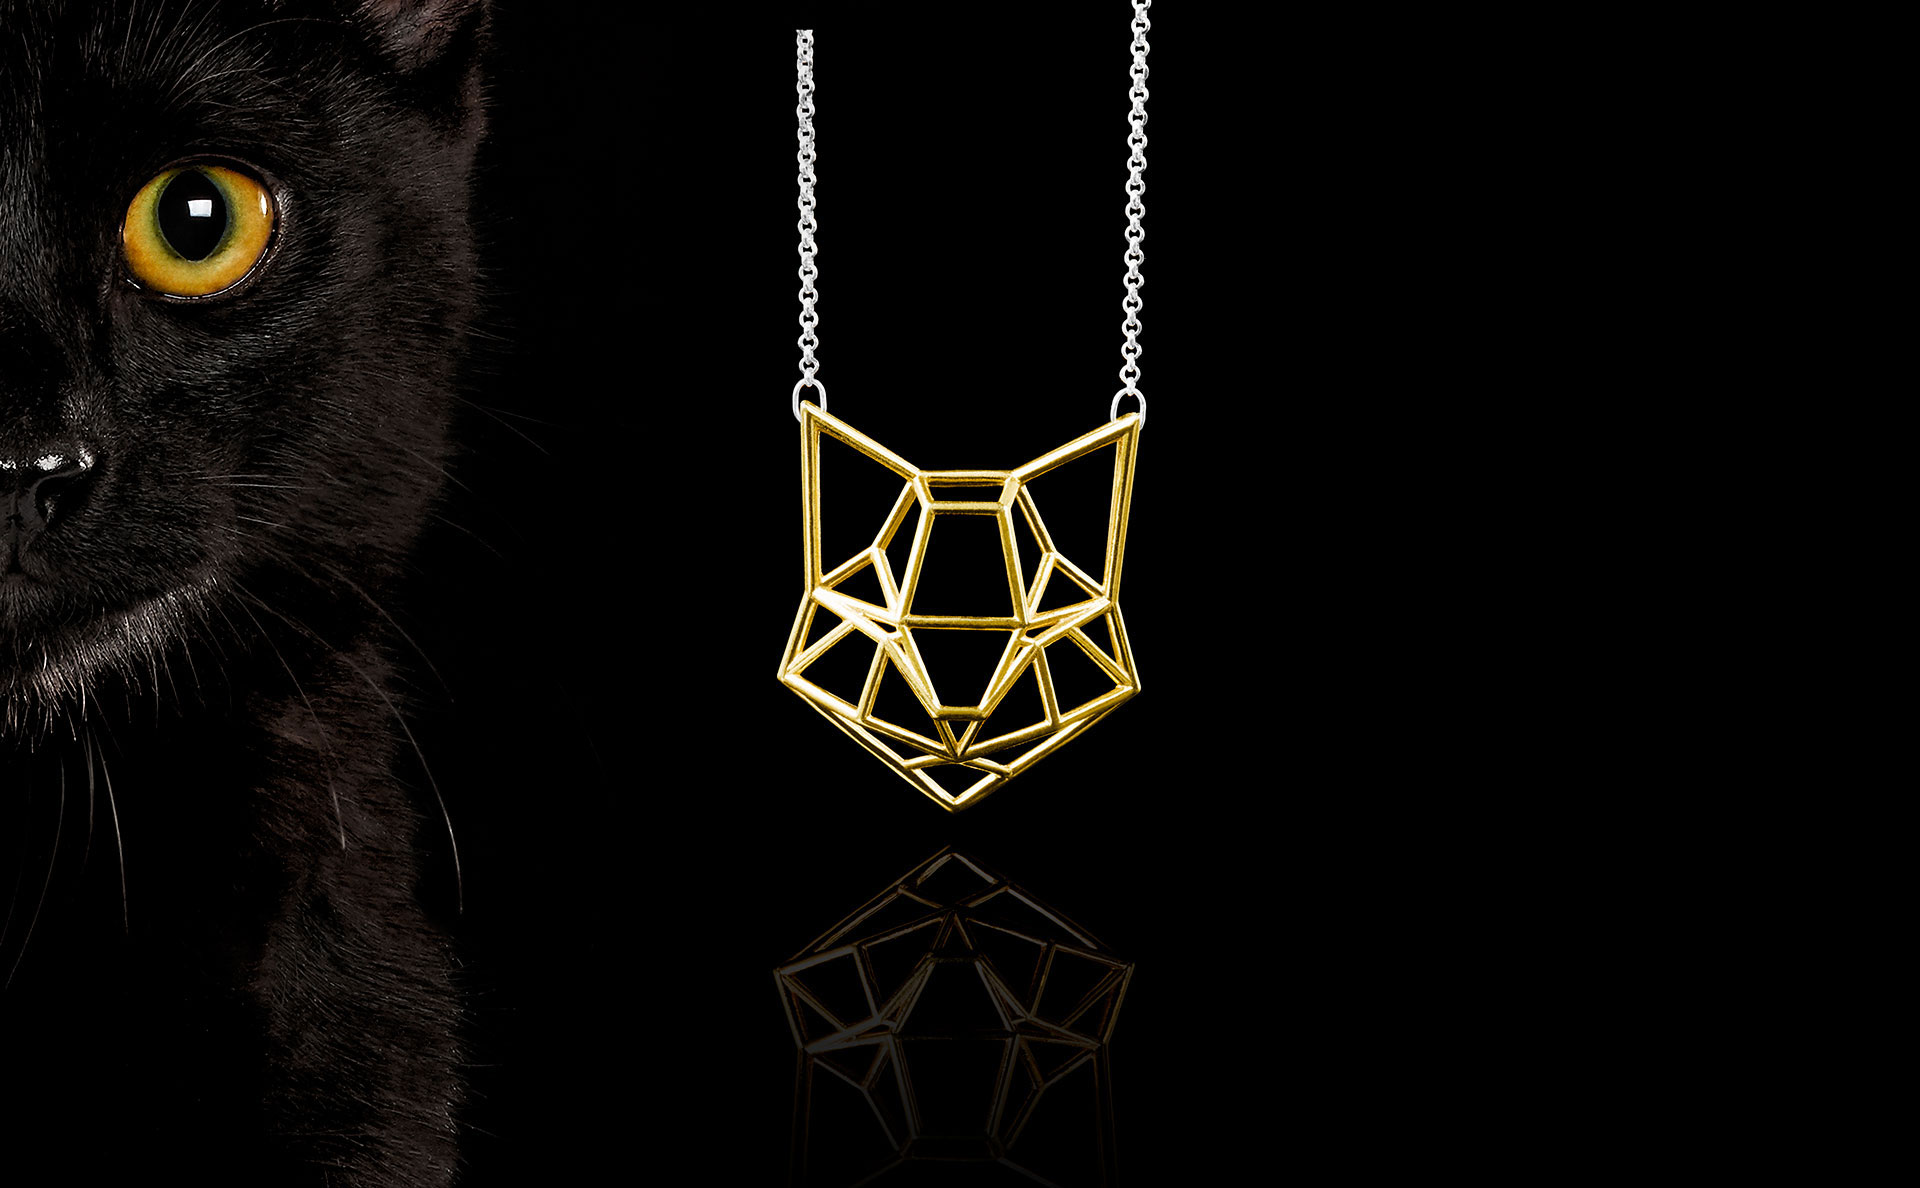 Cat Face Black Gold Silver Domestic Animal Necklace Icelandic Fashion Jewellery Design Geometric Scandinavian Jewelry